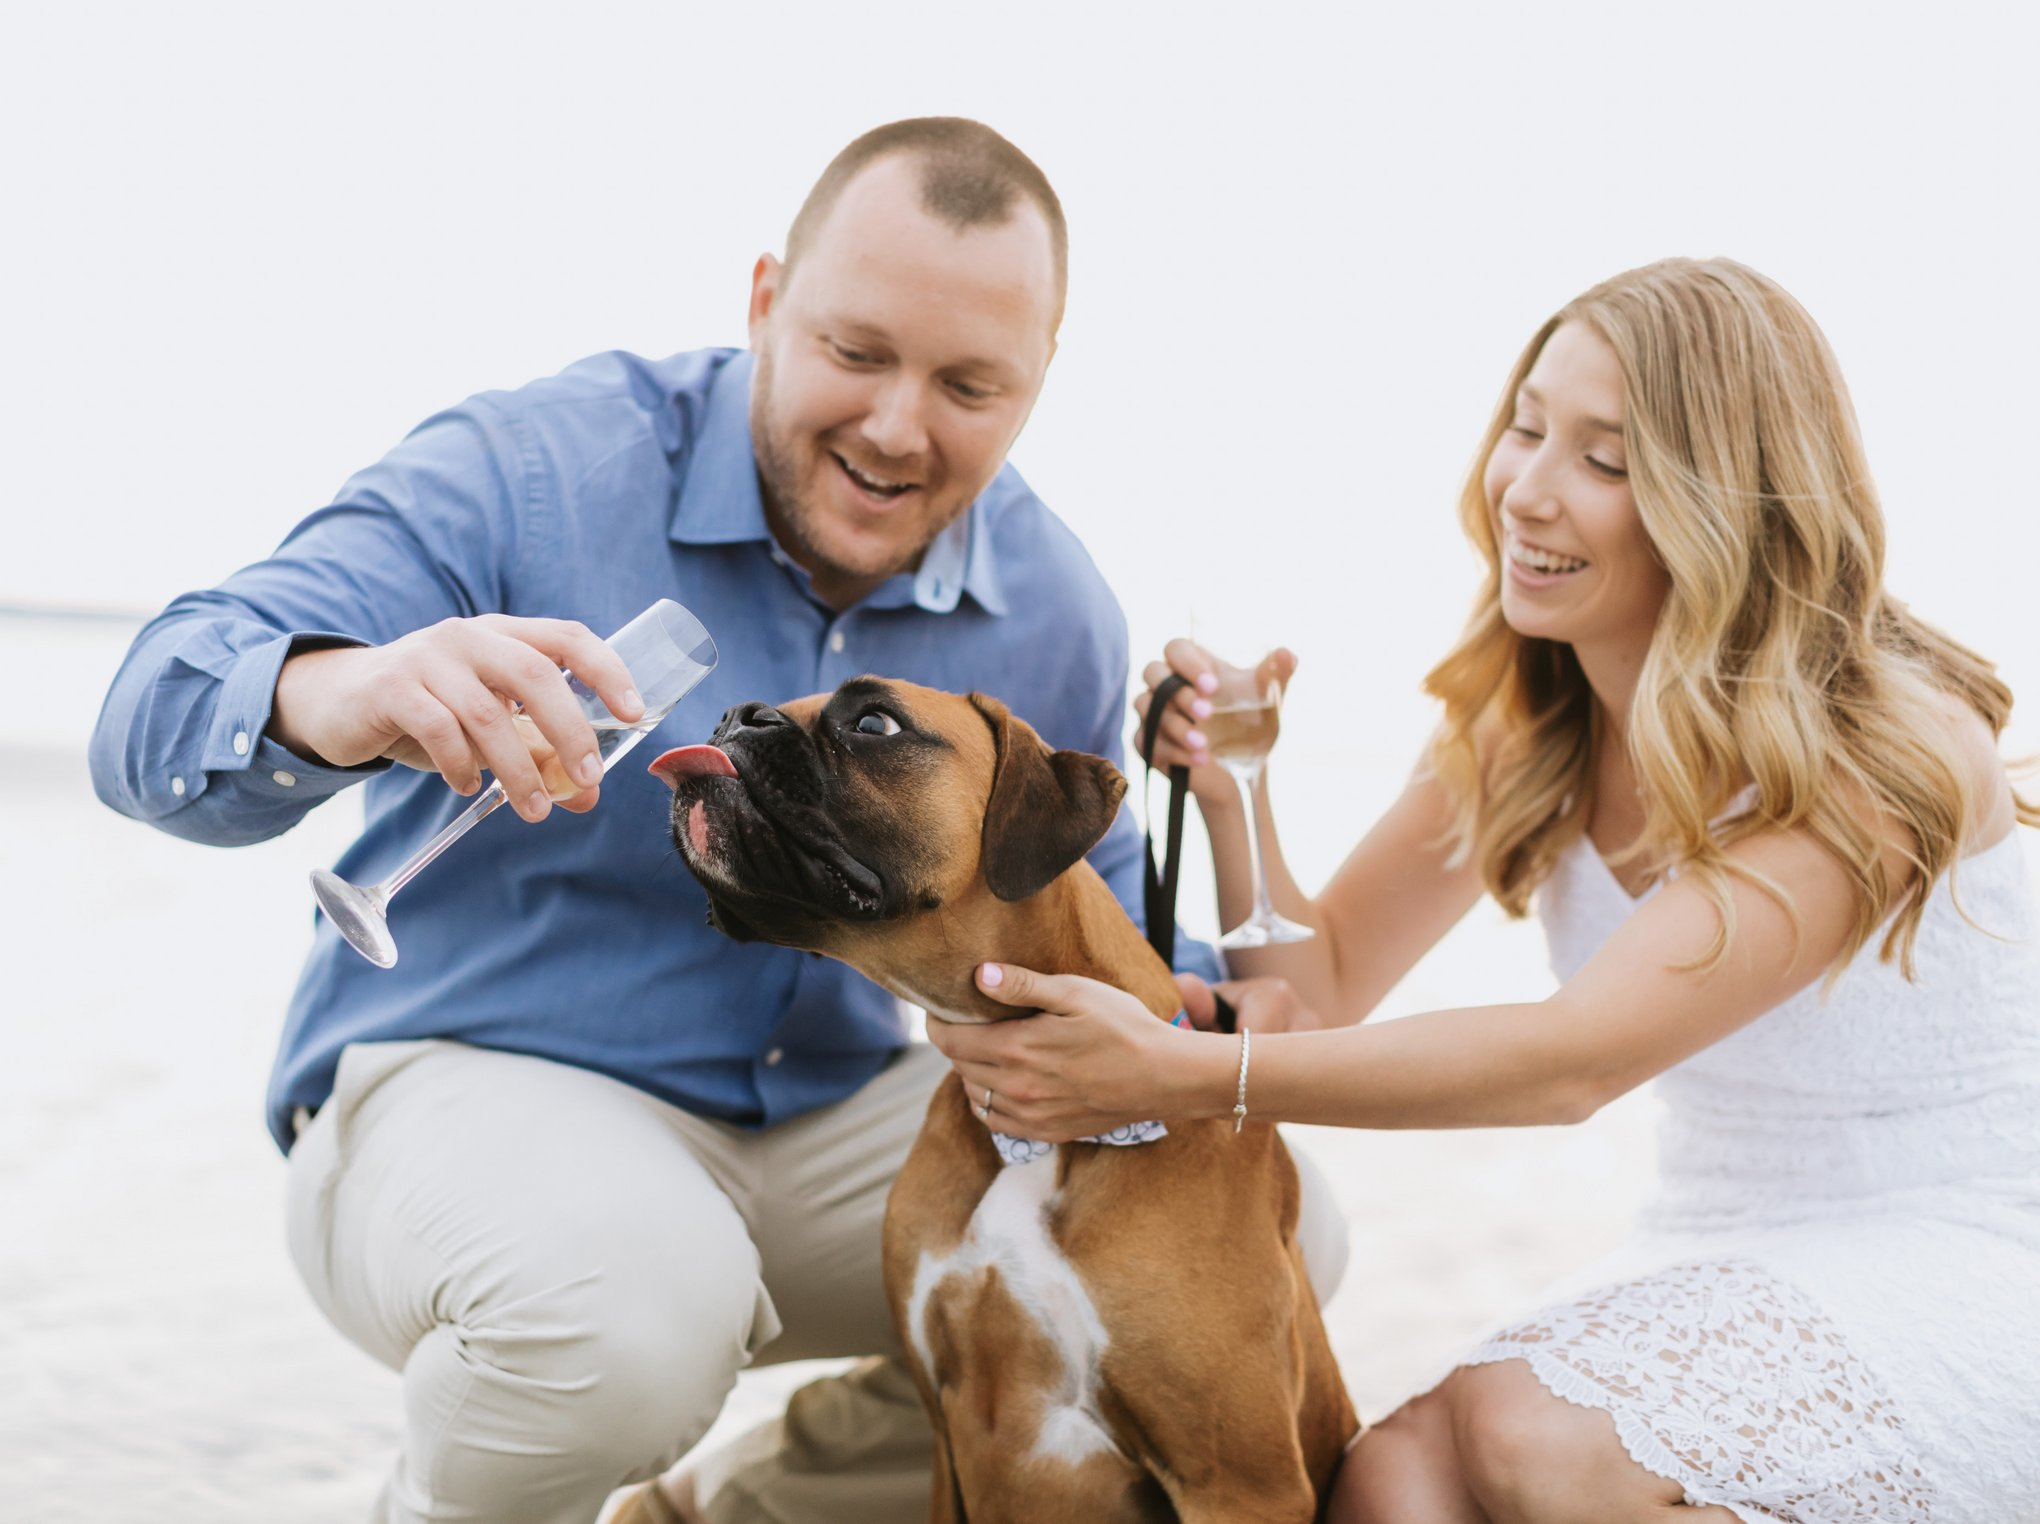 Boston_Beach_Engagement_Nahant_Photographer-20.jpg